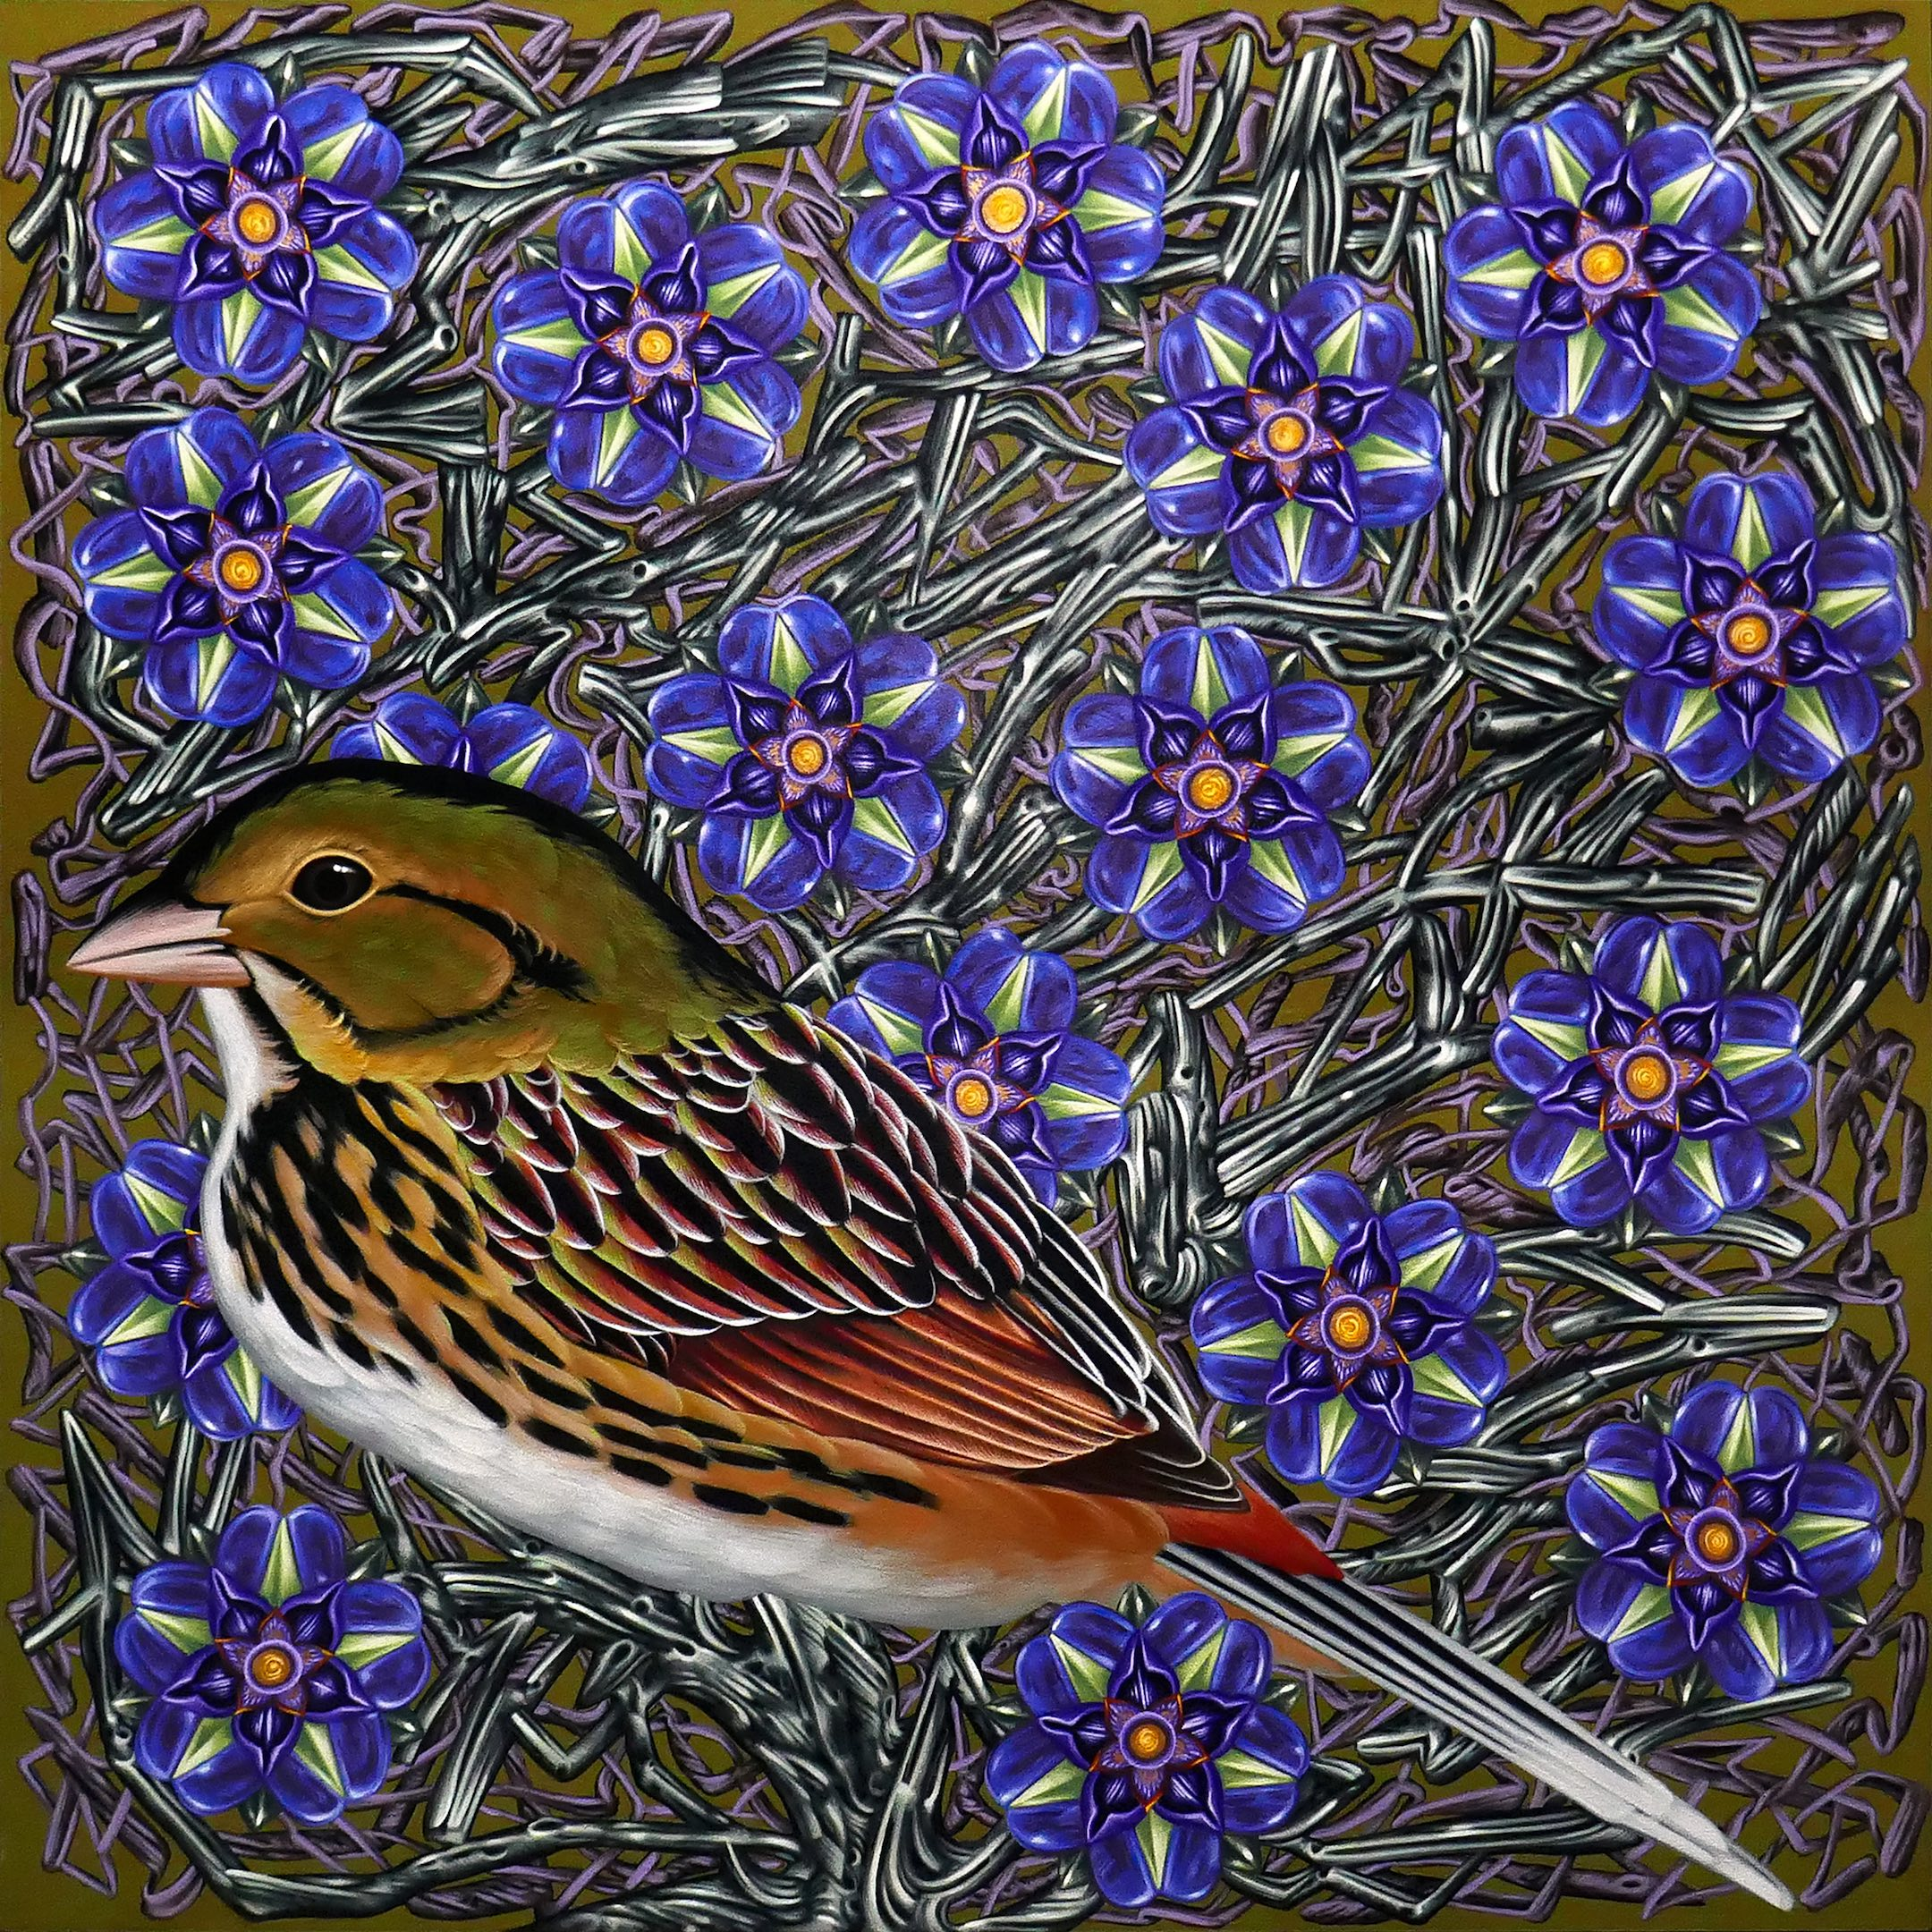 Exult 42 Henslow's Sparrow  30 x 30, Acrylic on panel